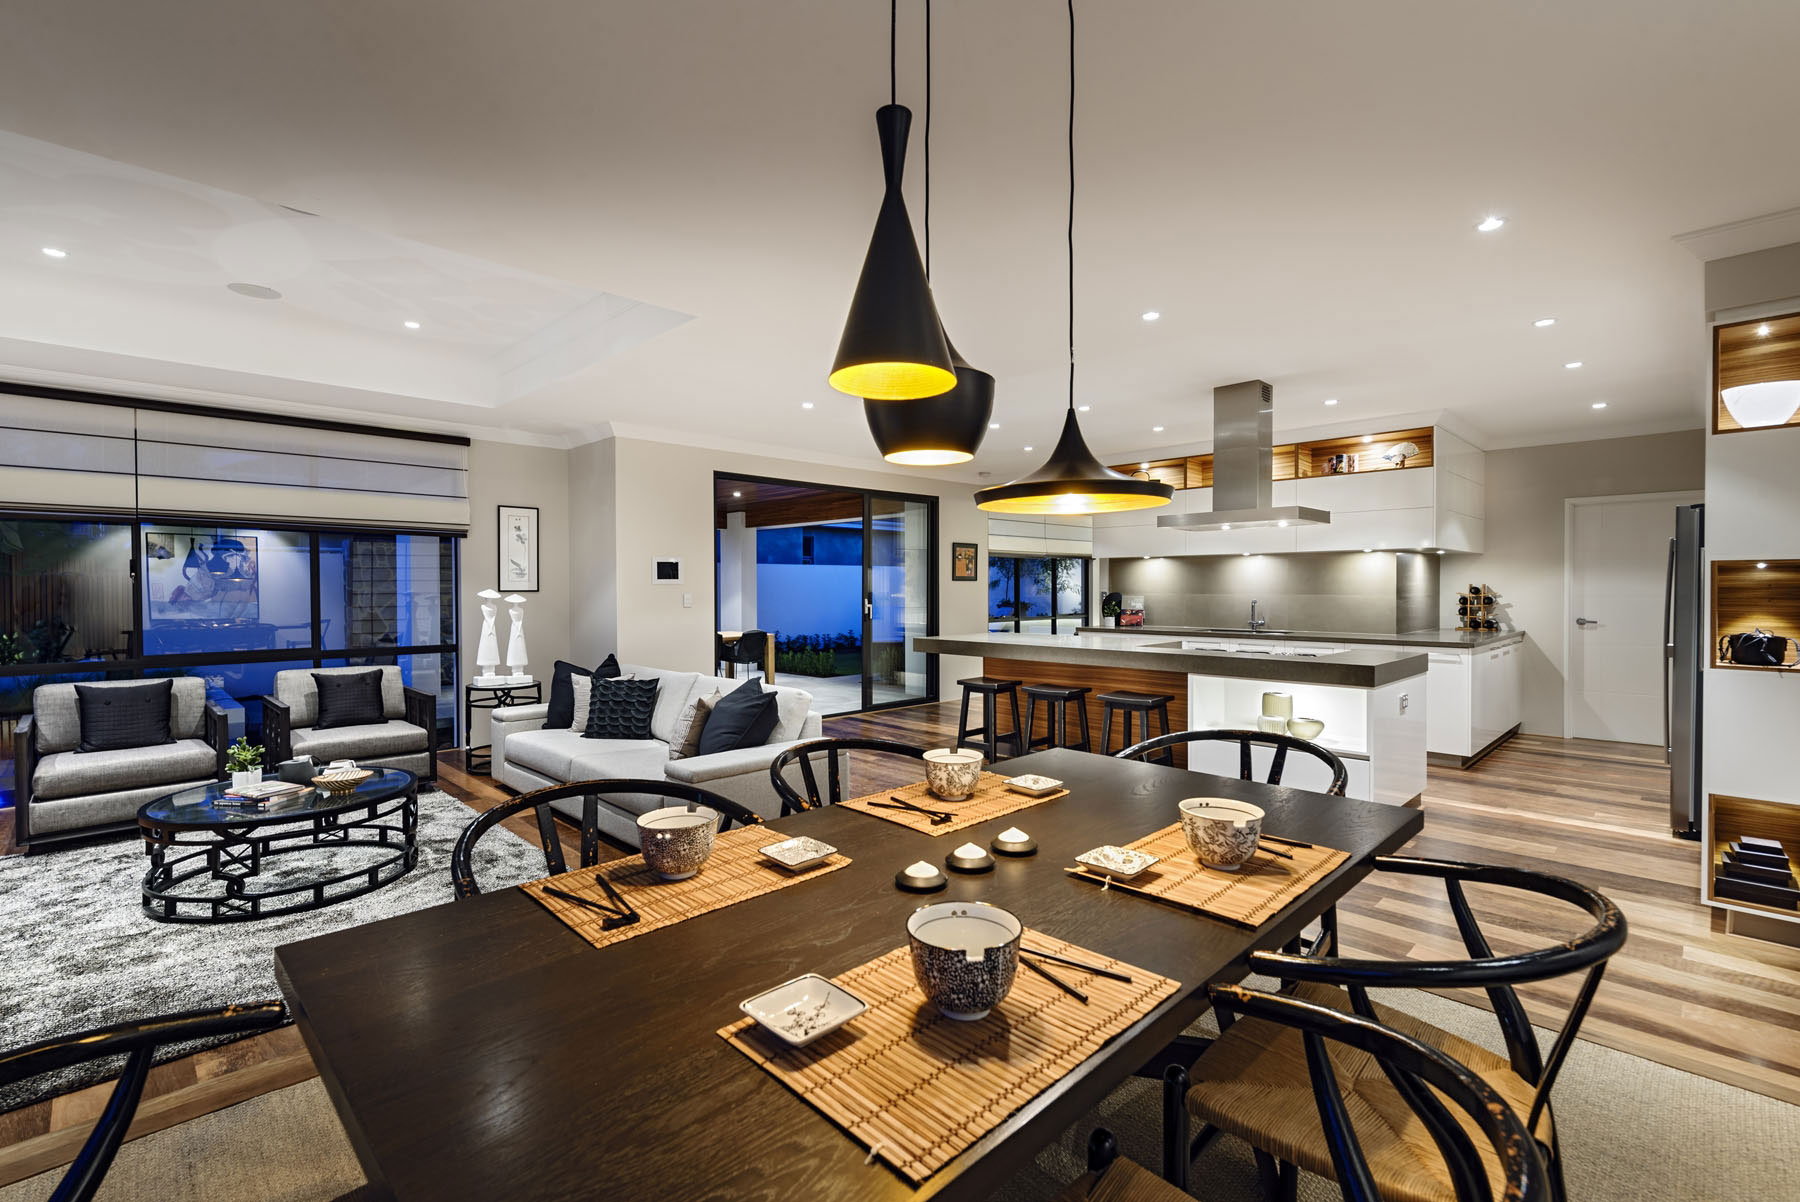 Pendant Lighting, Wooden Dining Table, House in Burns Beach, Perth